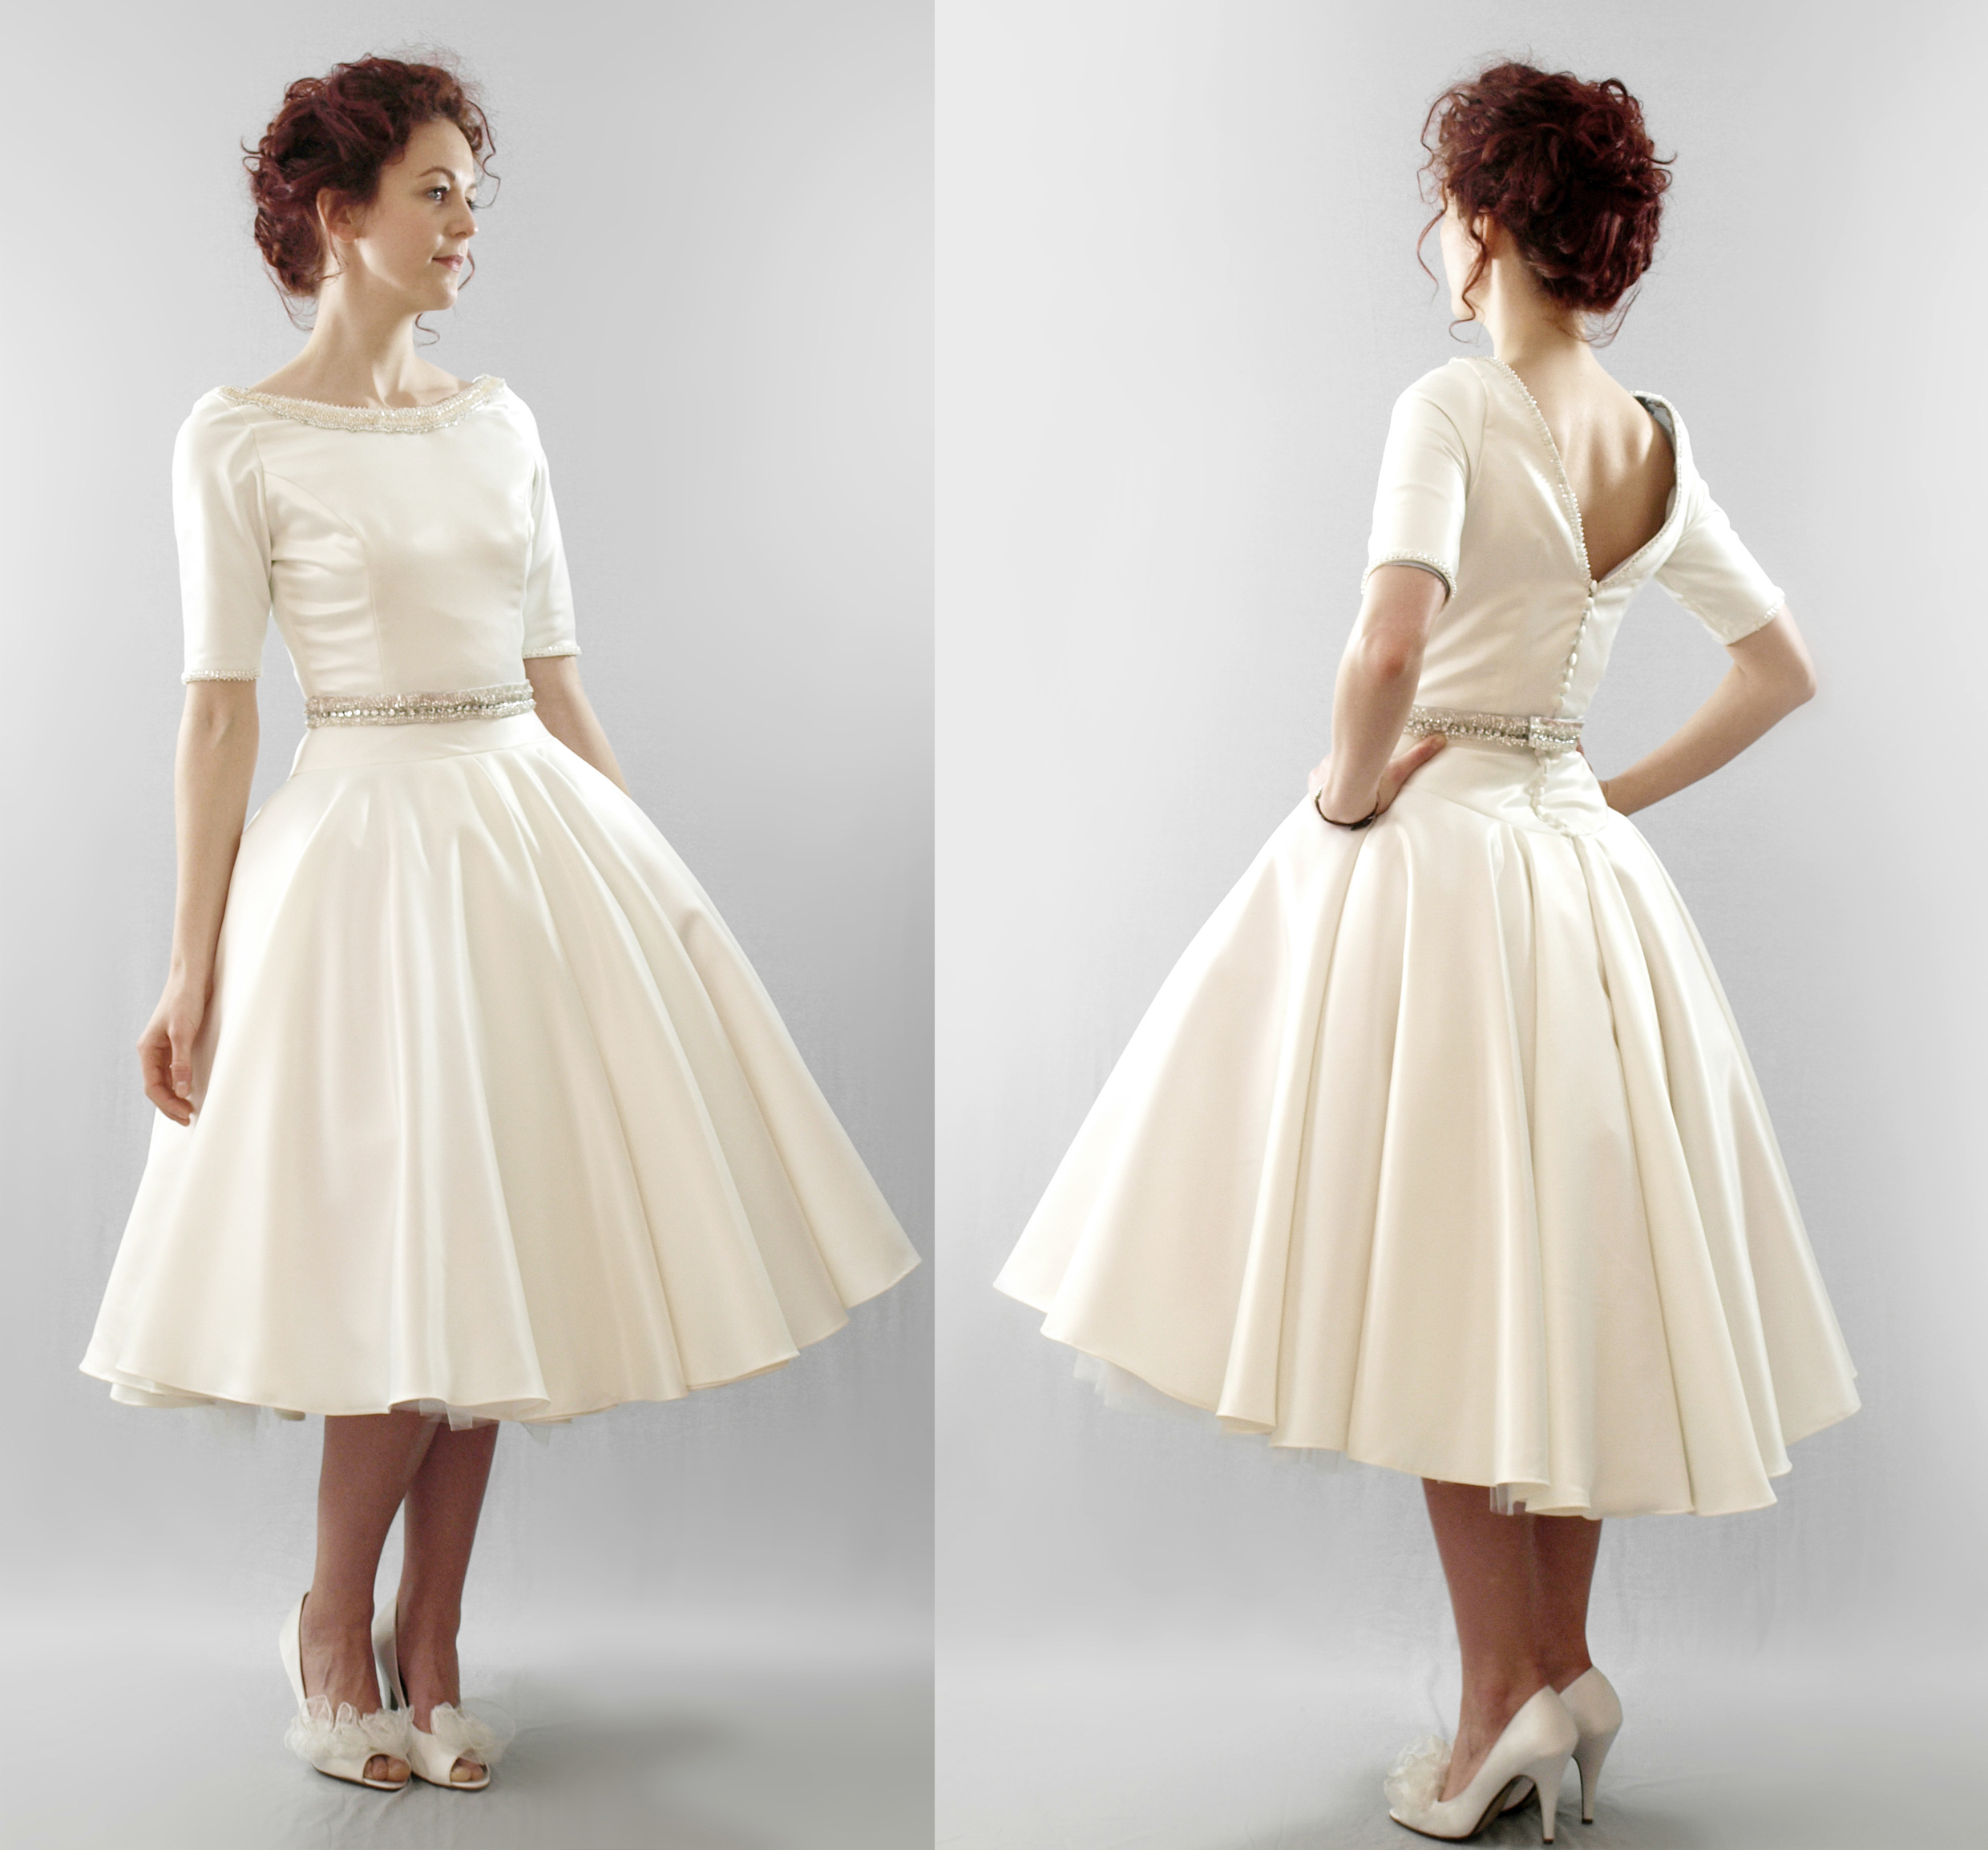 Tea Length Wedding Dresses Vintage - Overlay Wedding Dresses